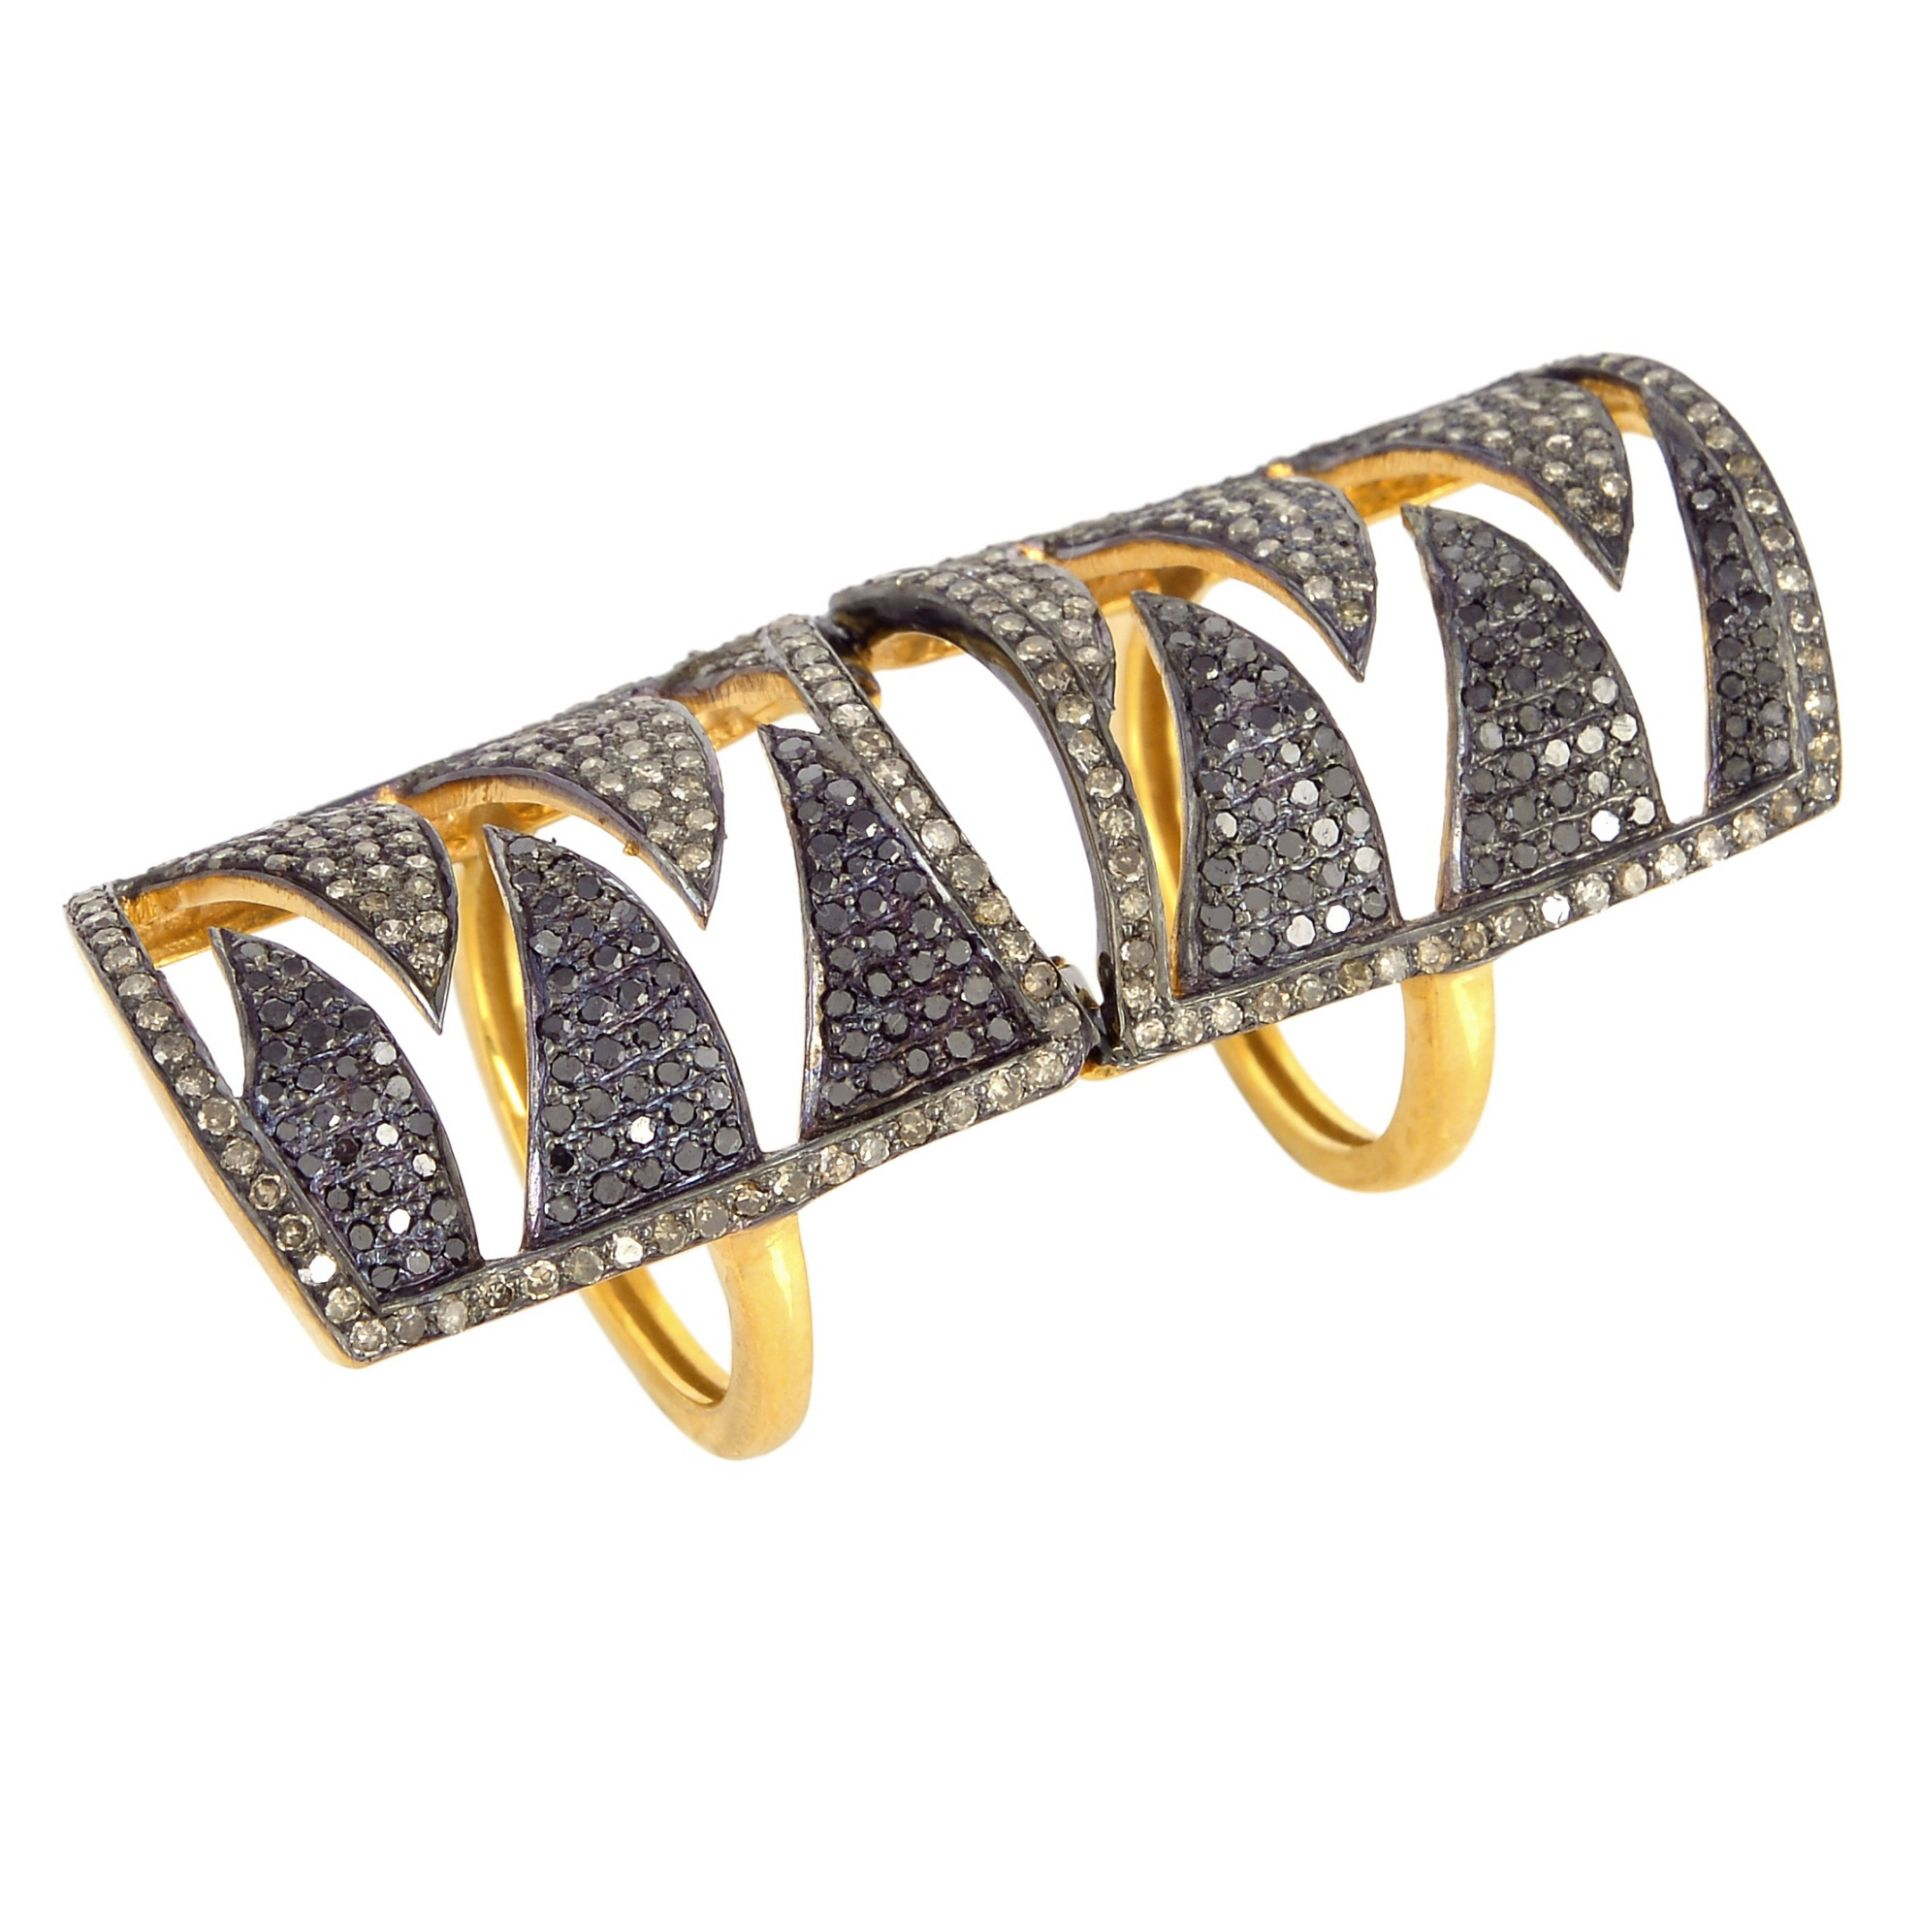 Meghna Jewels Interlocking Claw Ring Black and Champagne Diamonds